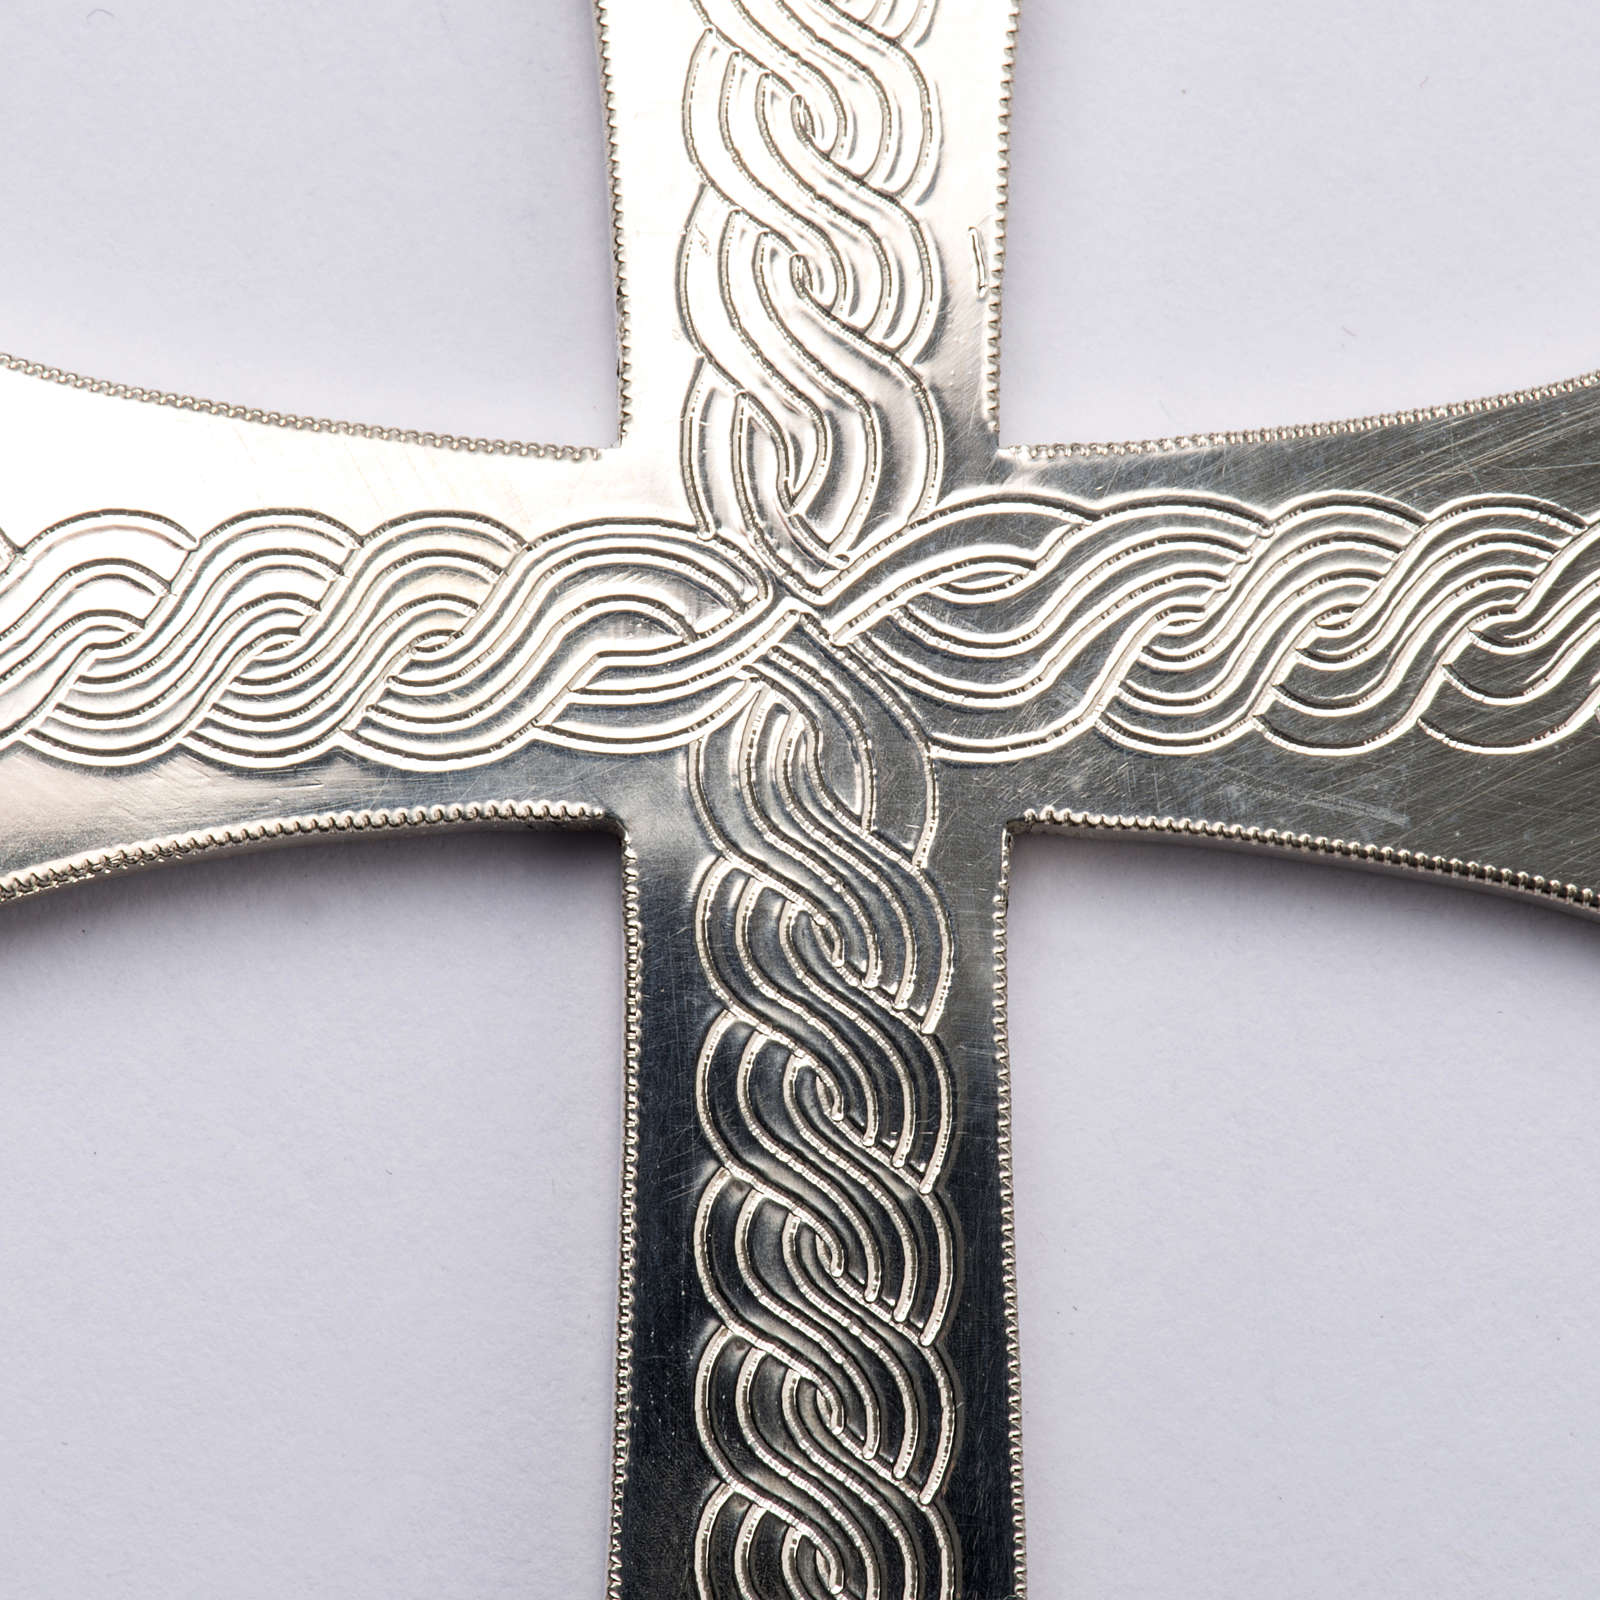 Pectoral Cross made of silver 800 with engravings 3